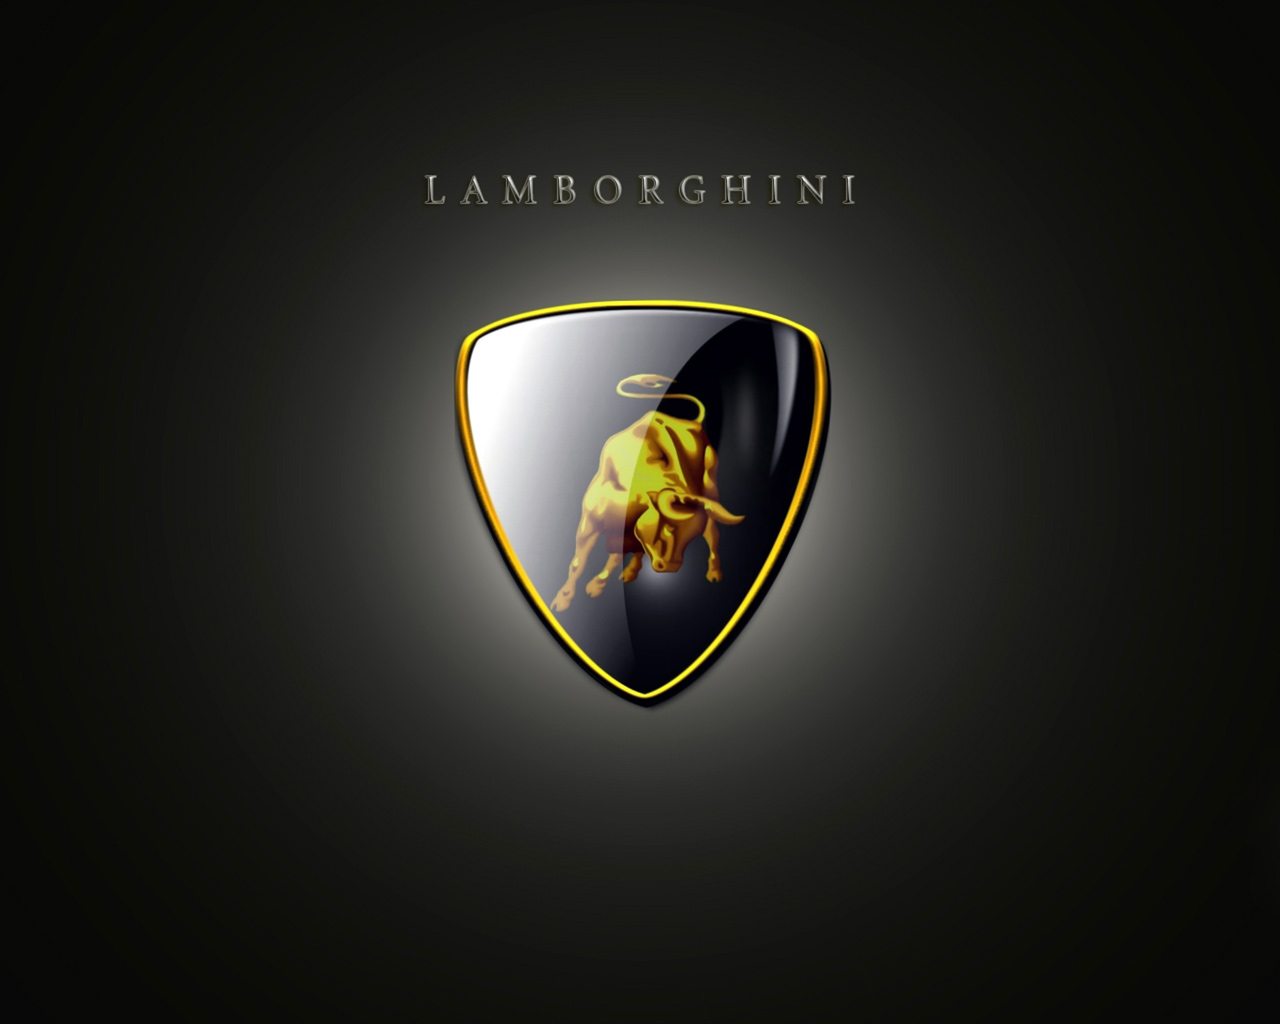 lamborghini wallpapers hd | jjp 3